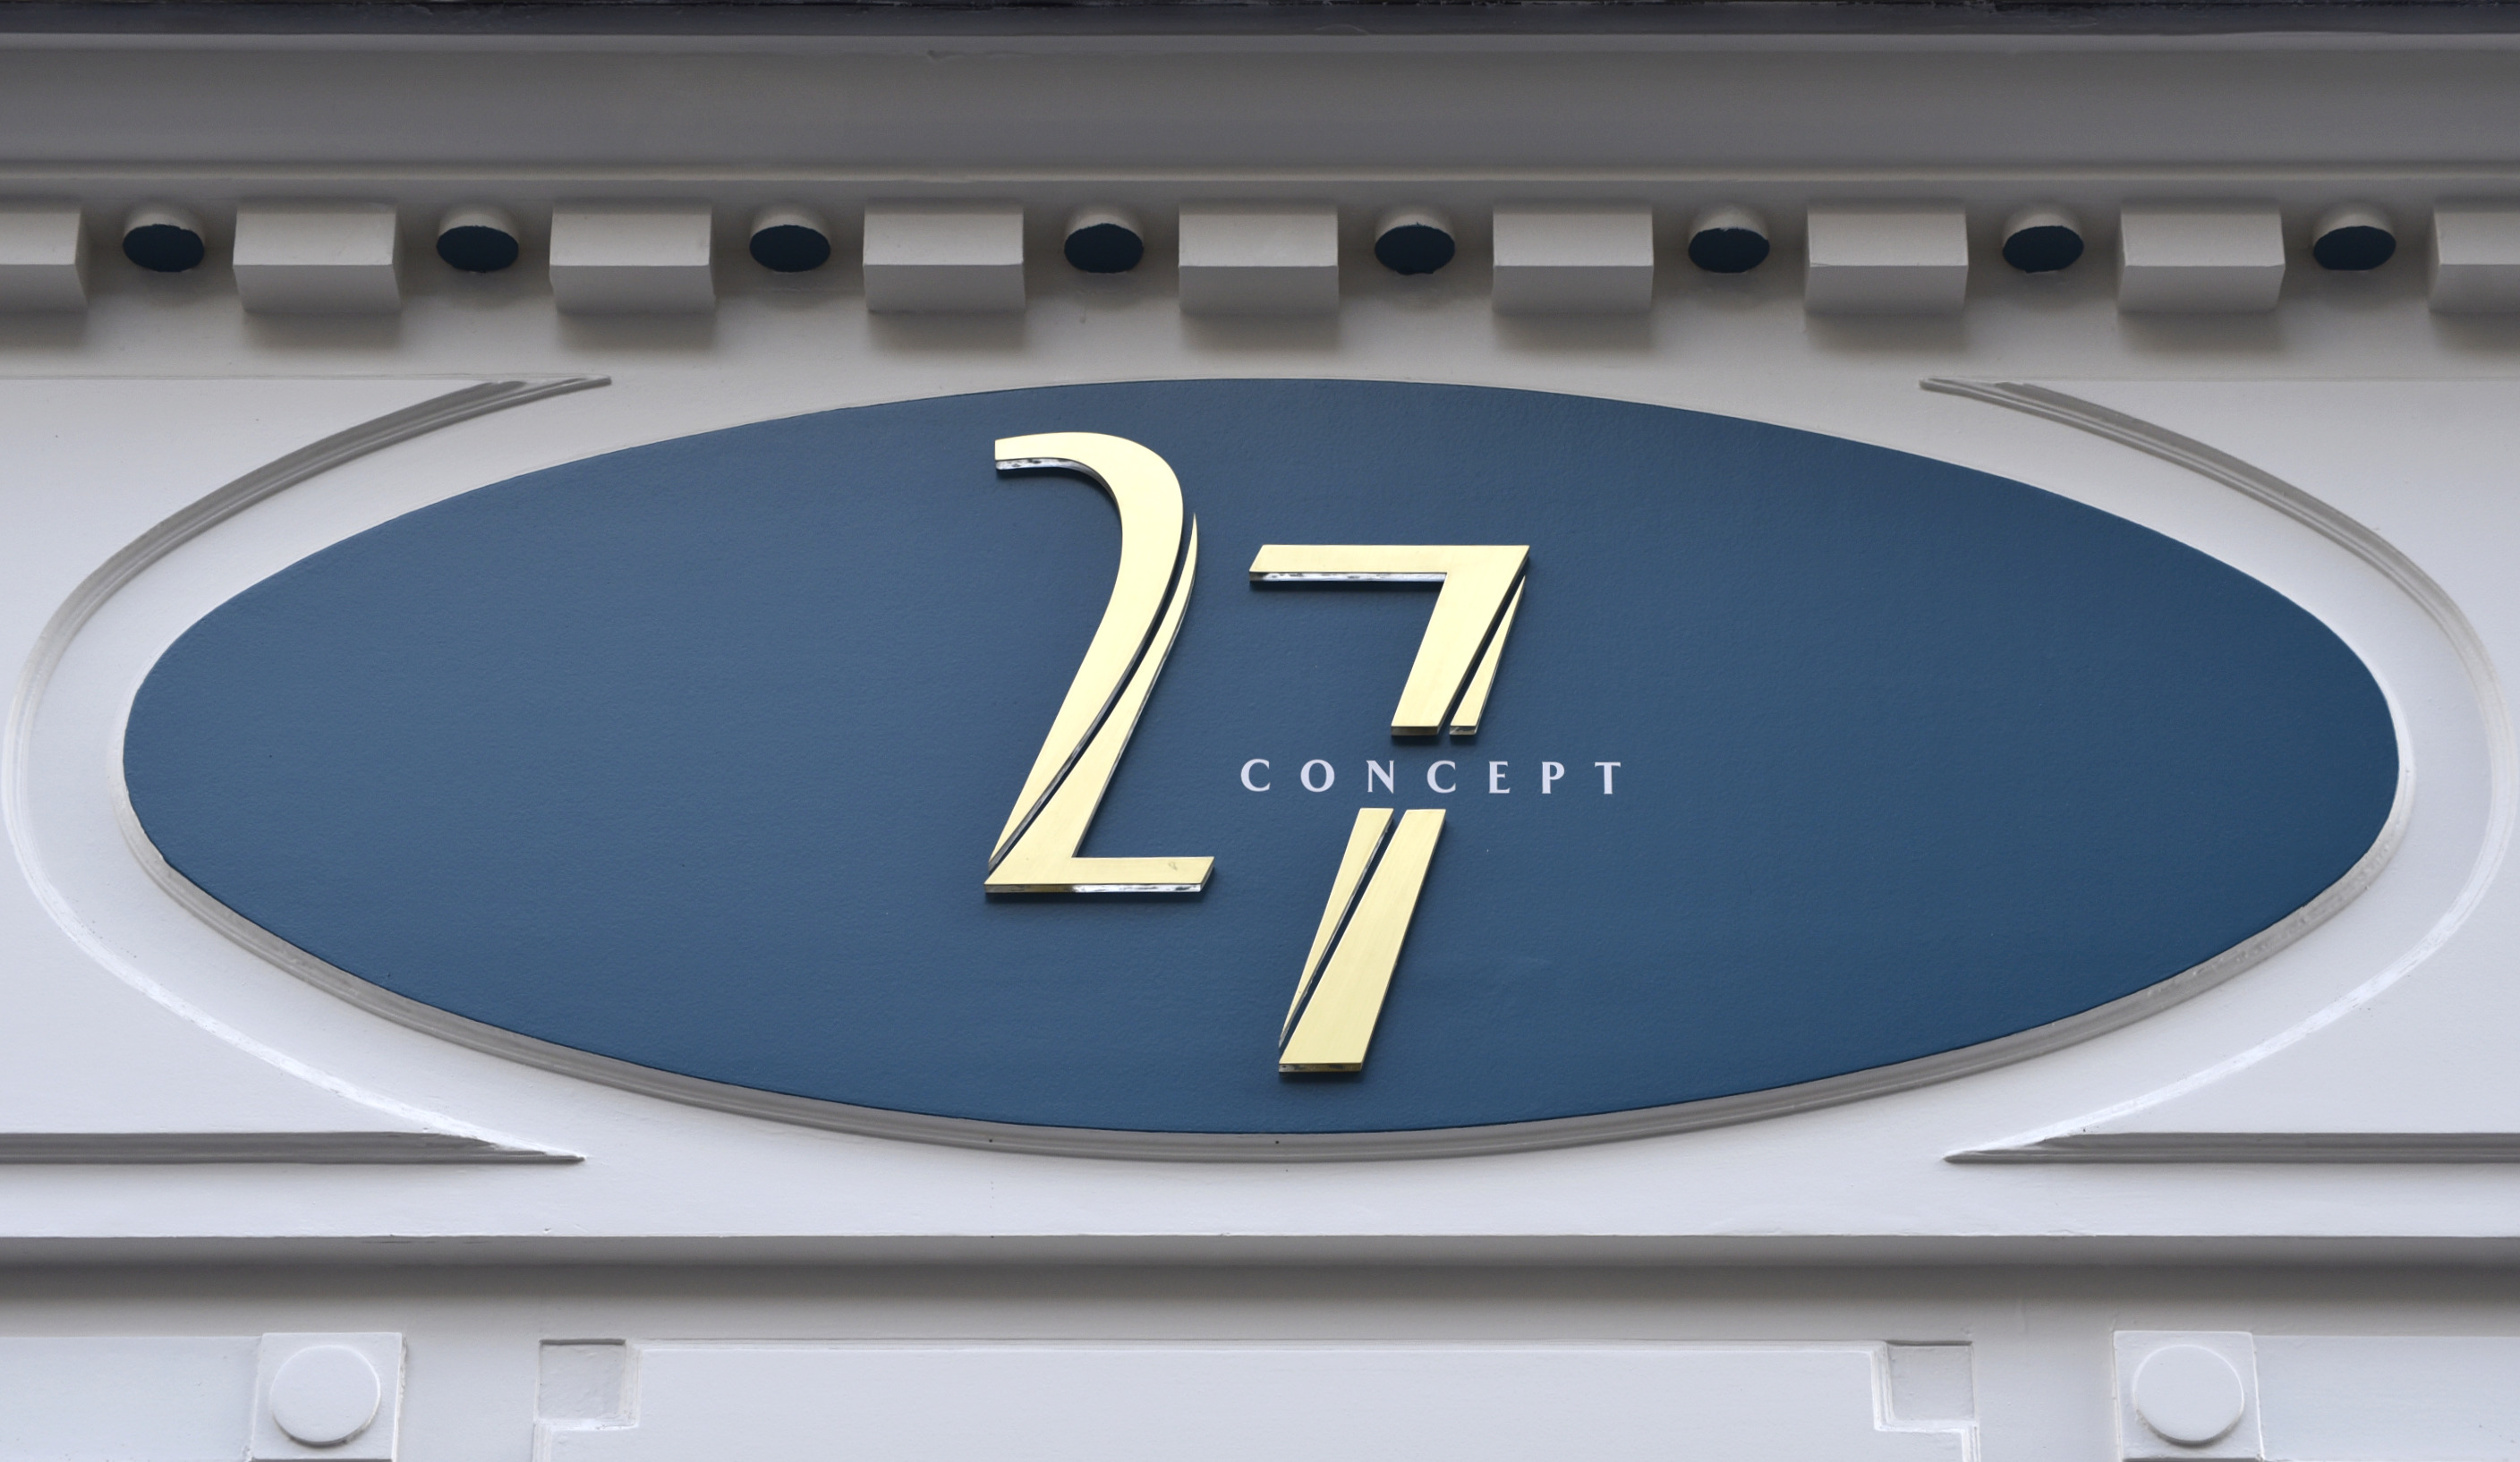 Gallery 27 Concept